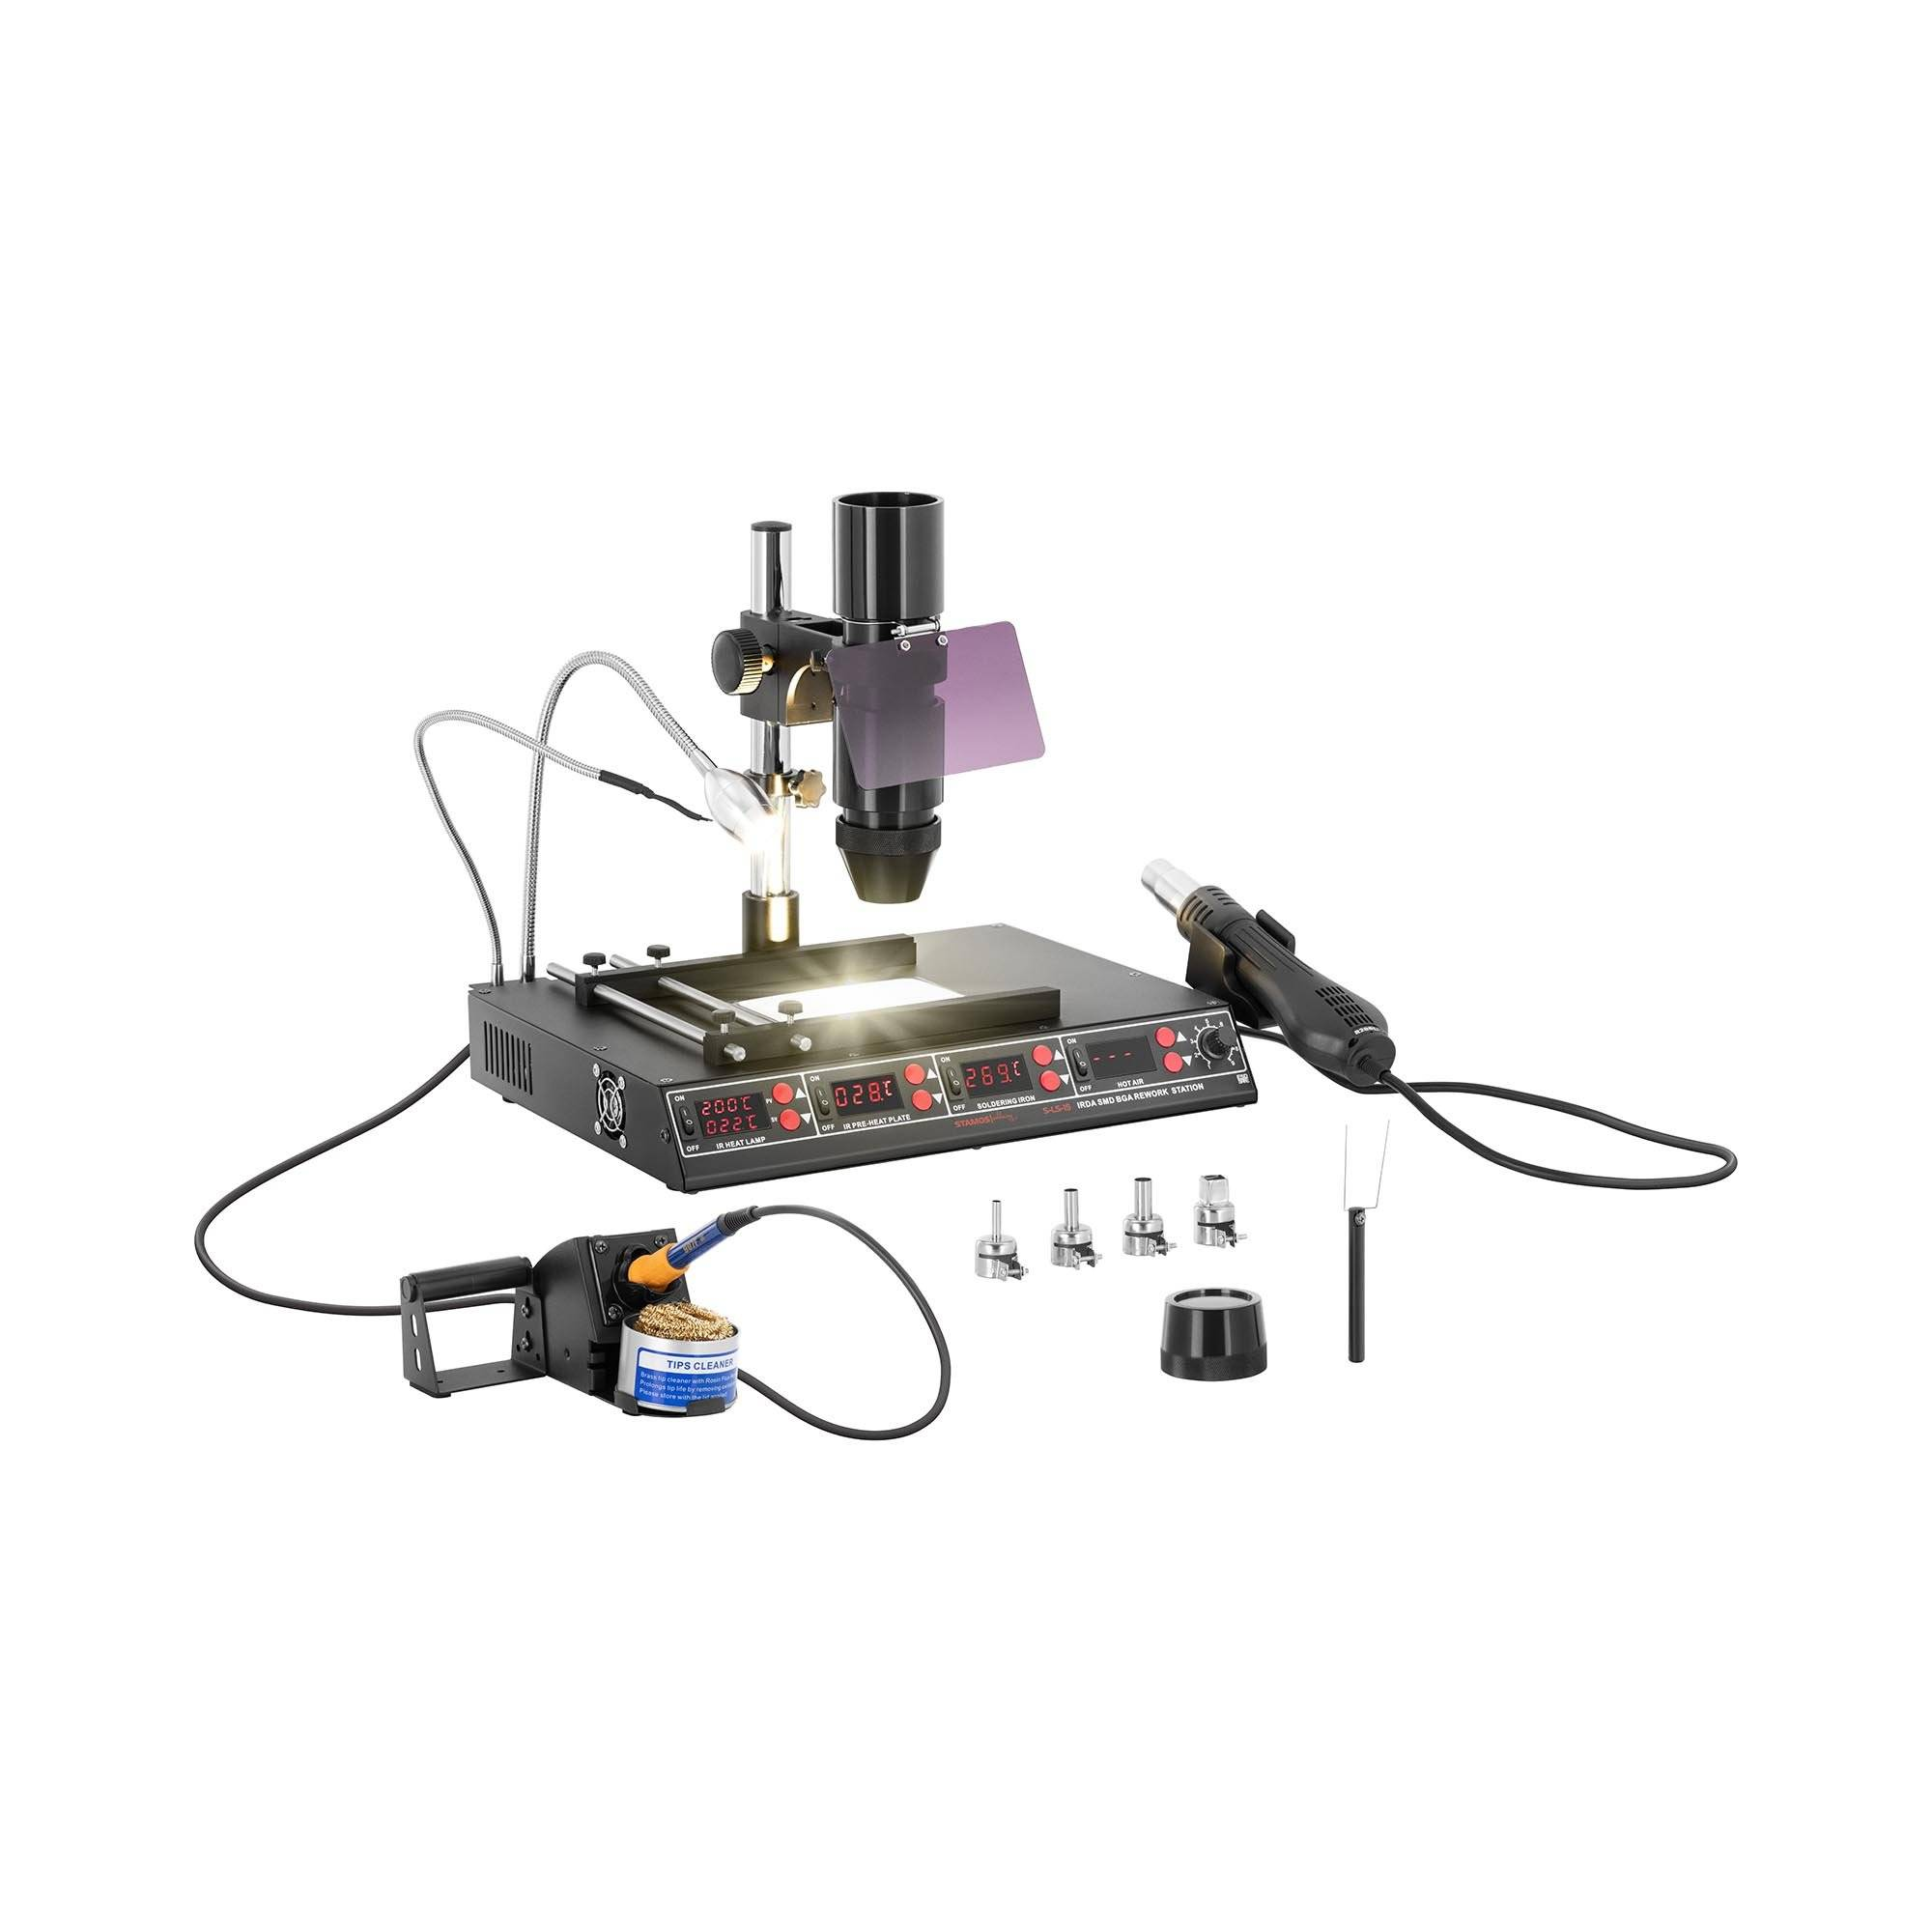 Stamos Soldering Soldering Station with pre-heating plate and infrared lamp â 1450W â 4 x LED â Basic